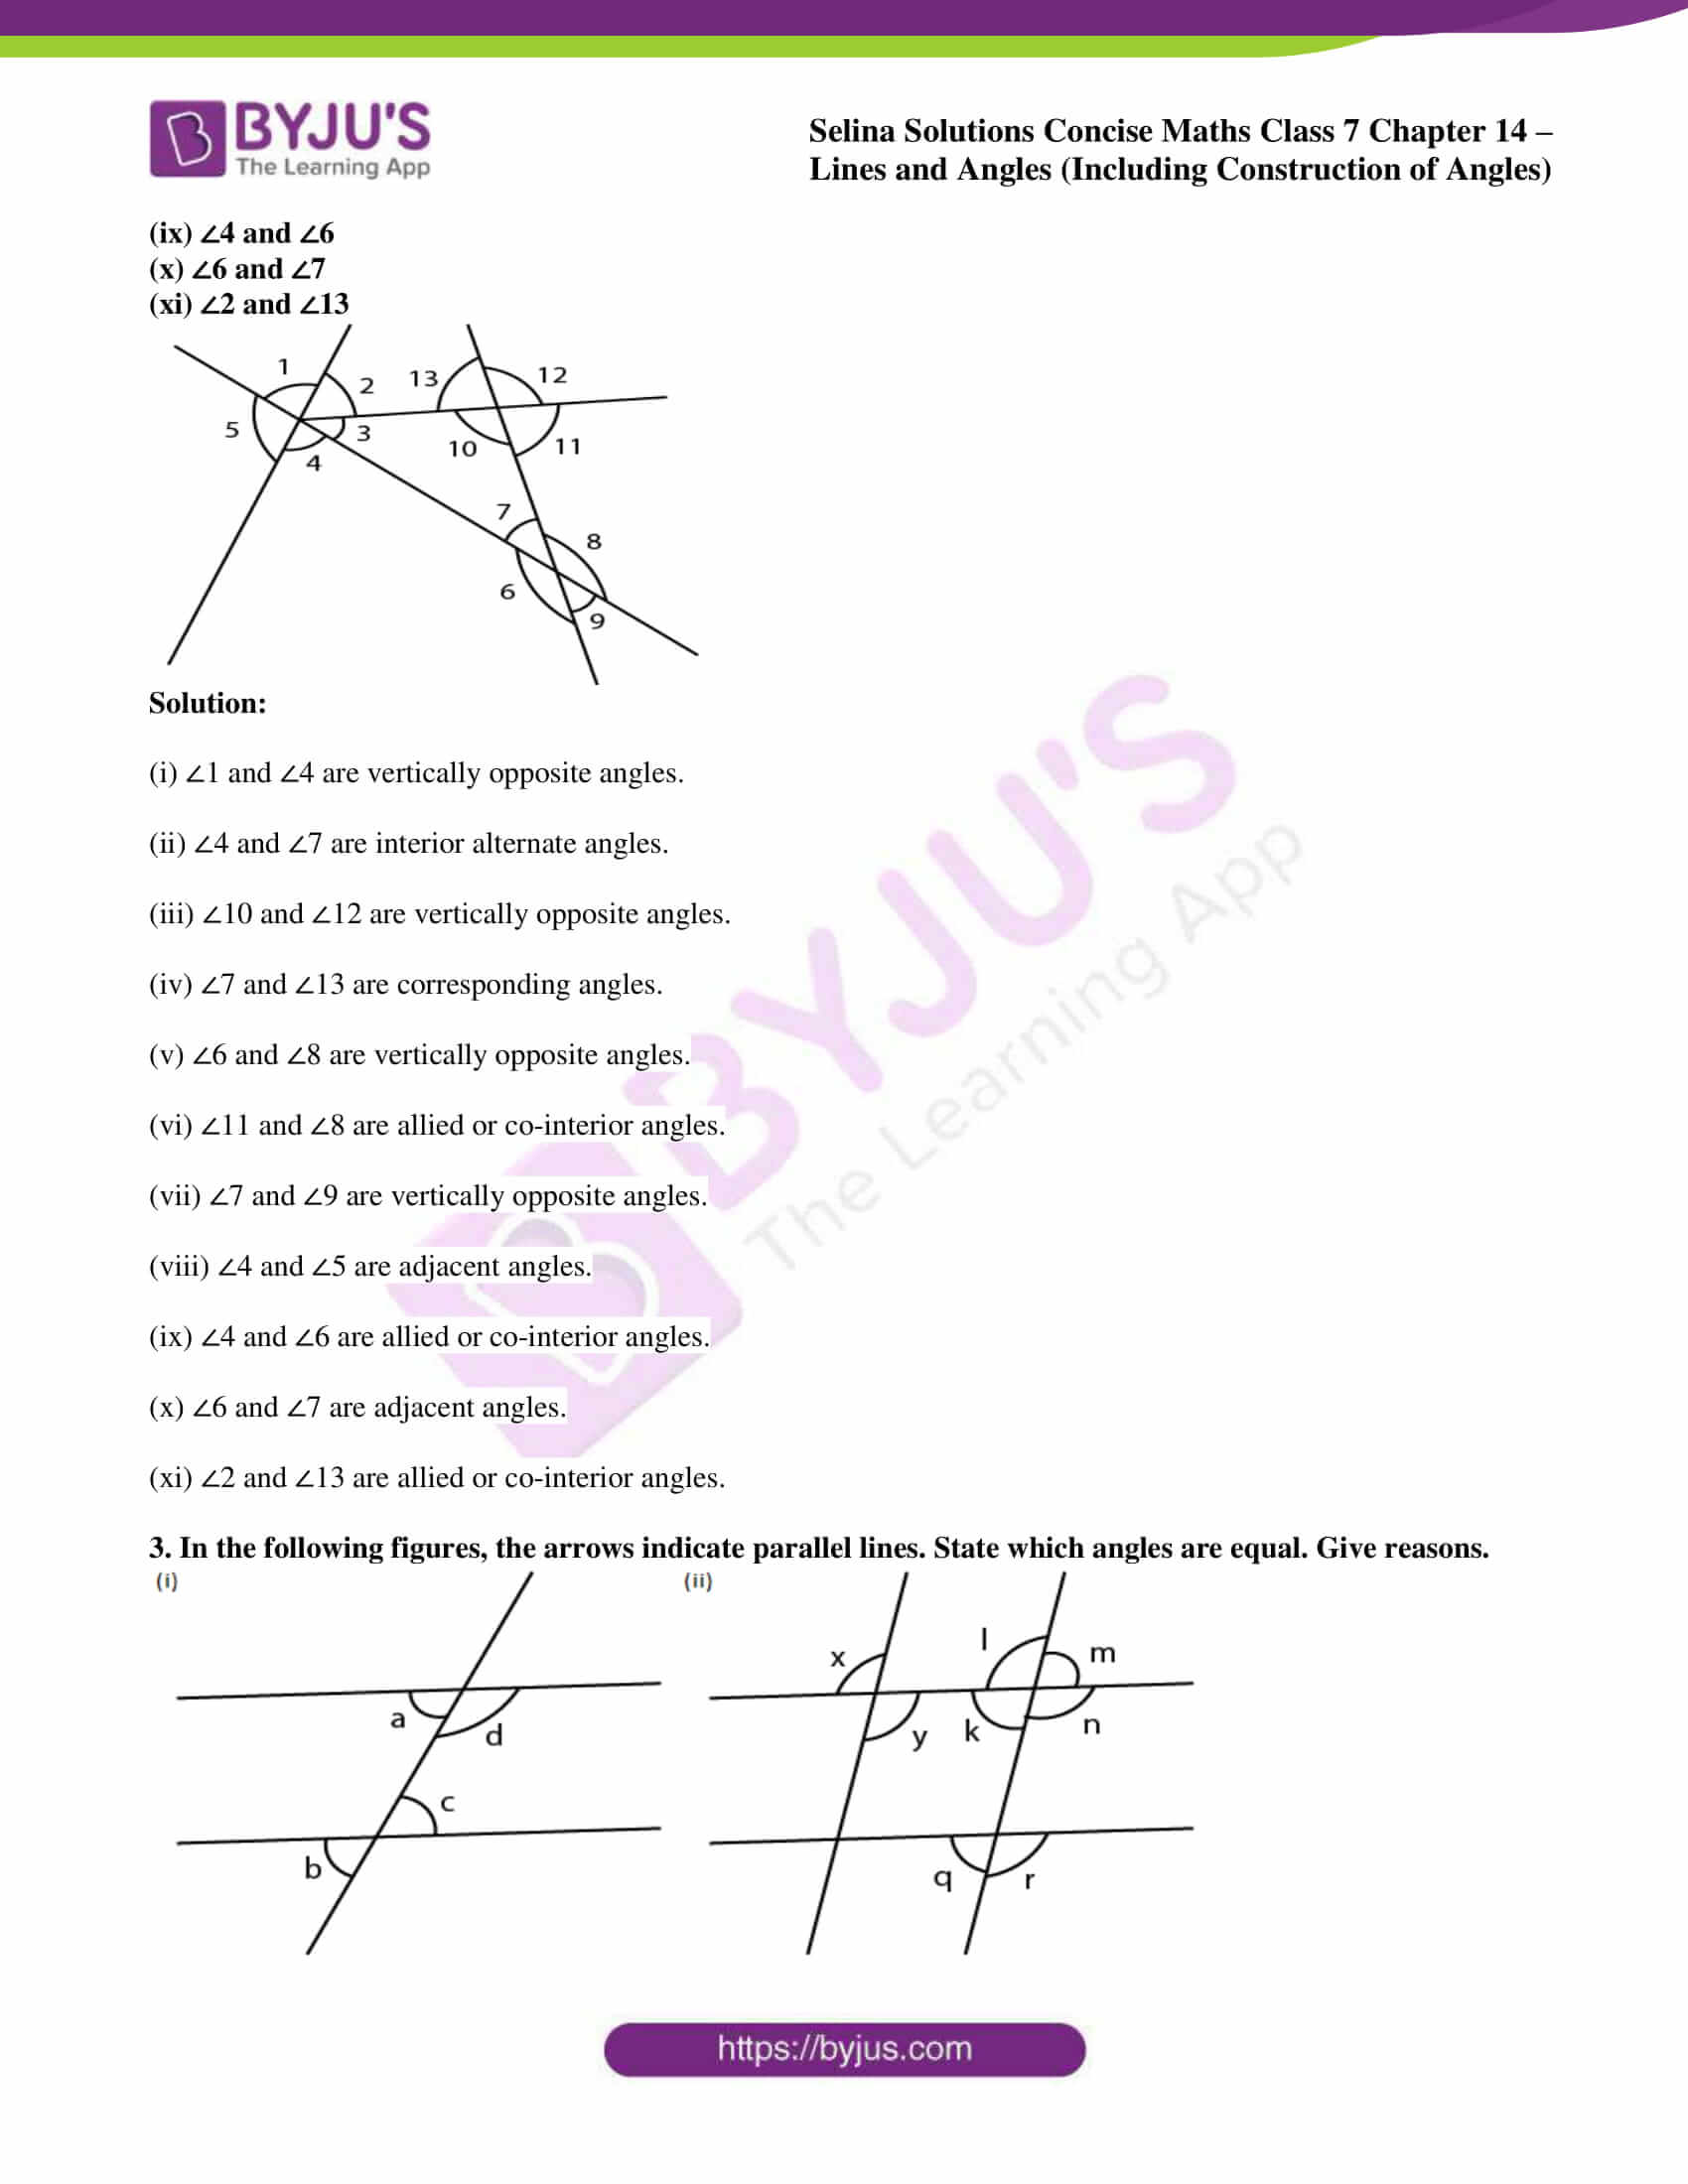 selina solution concise maths class 7 ch 14b 02